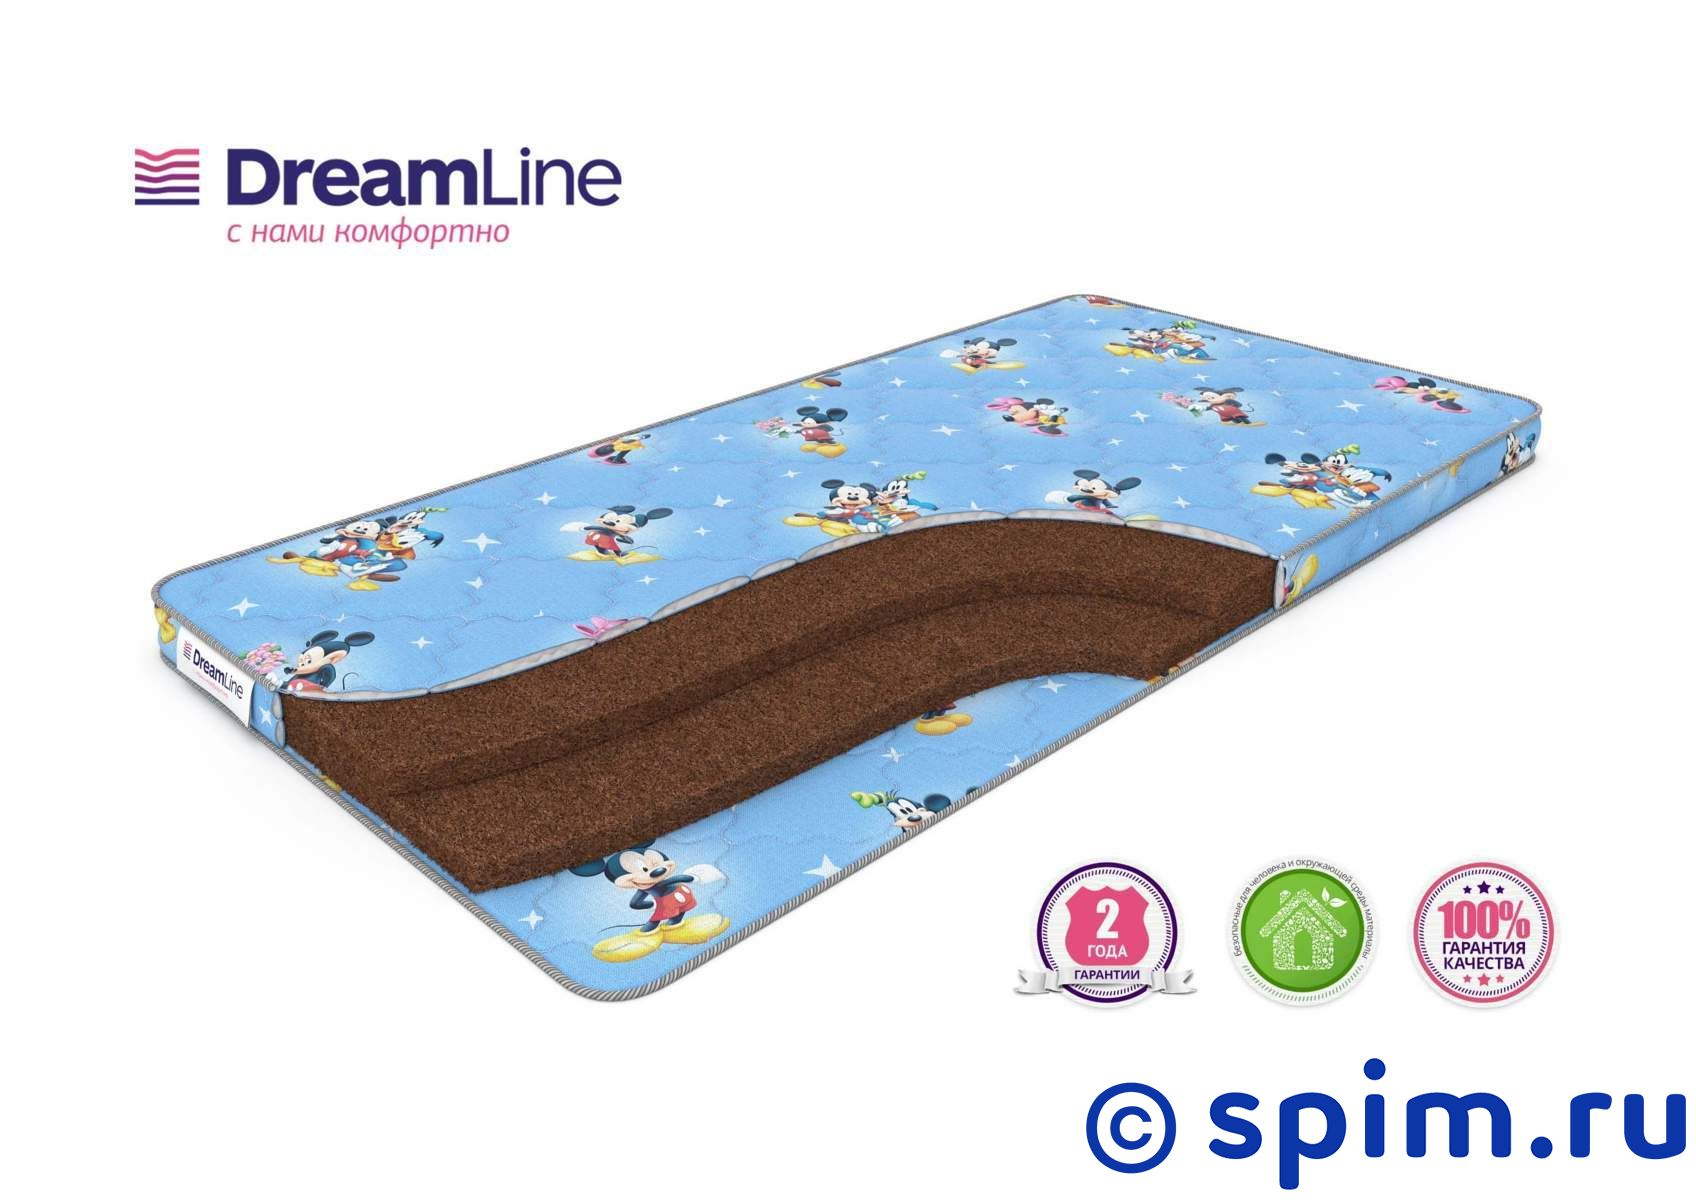 Детский матрас DreamLine BabyDream 6 80х200 см матрас sealy premier plush 80х200 см